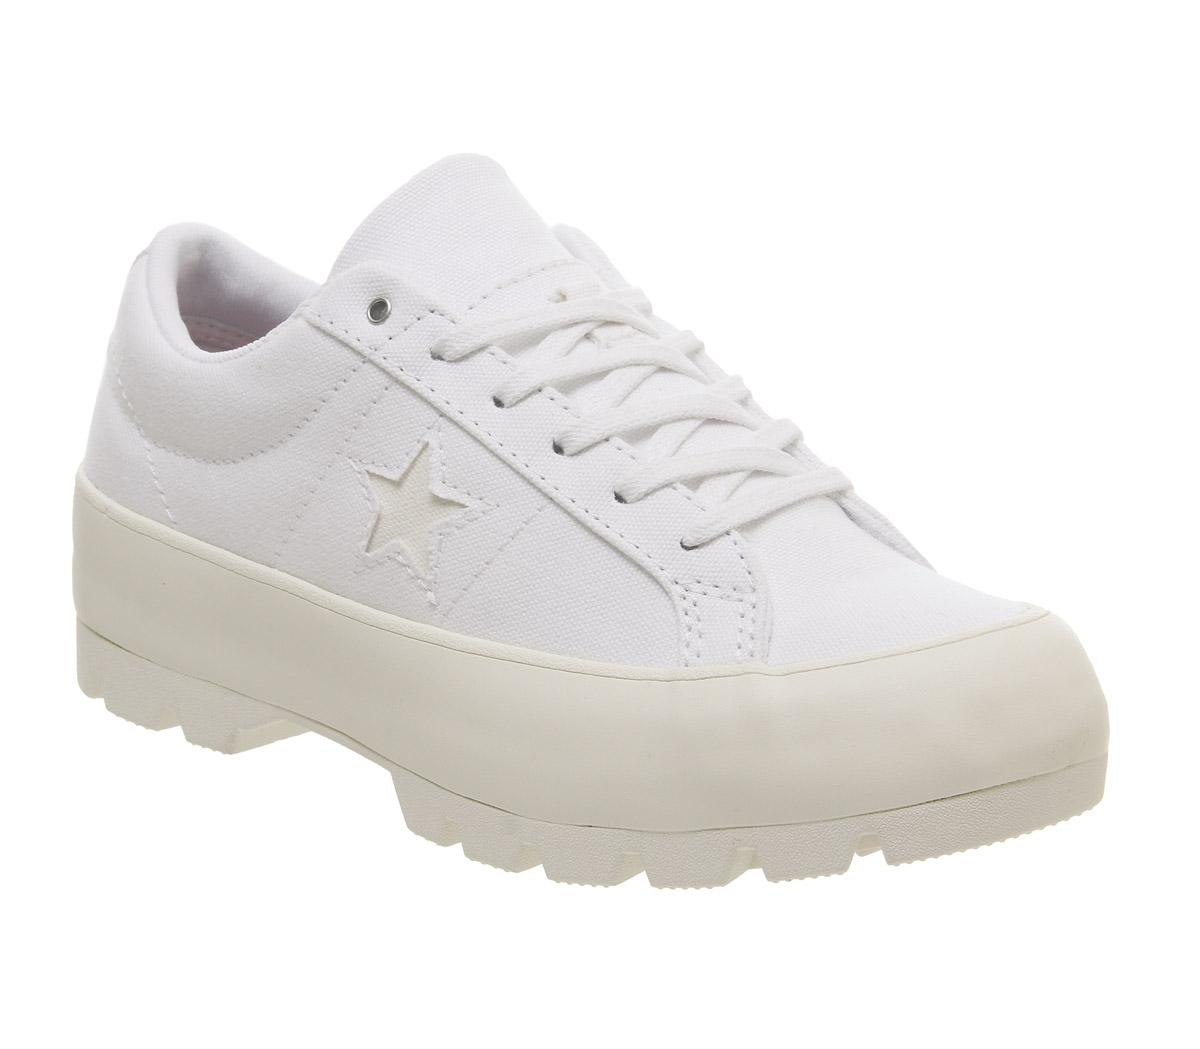 Converse One Star Lugged Ox Trainers